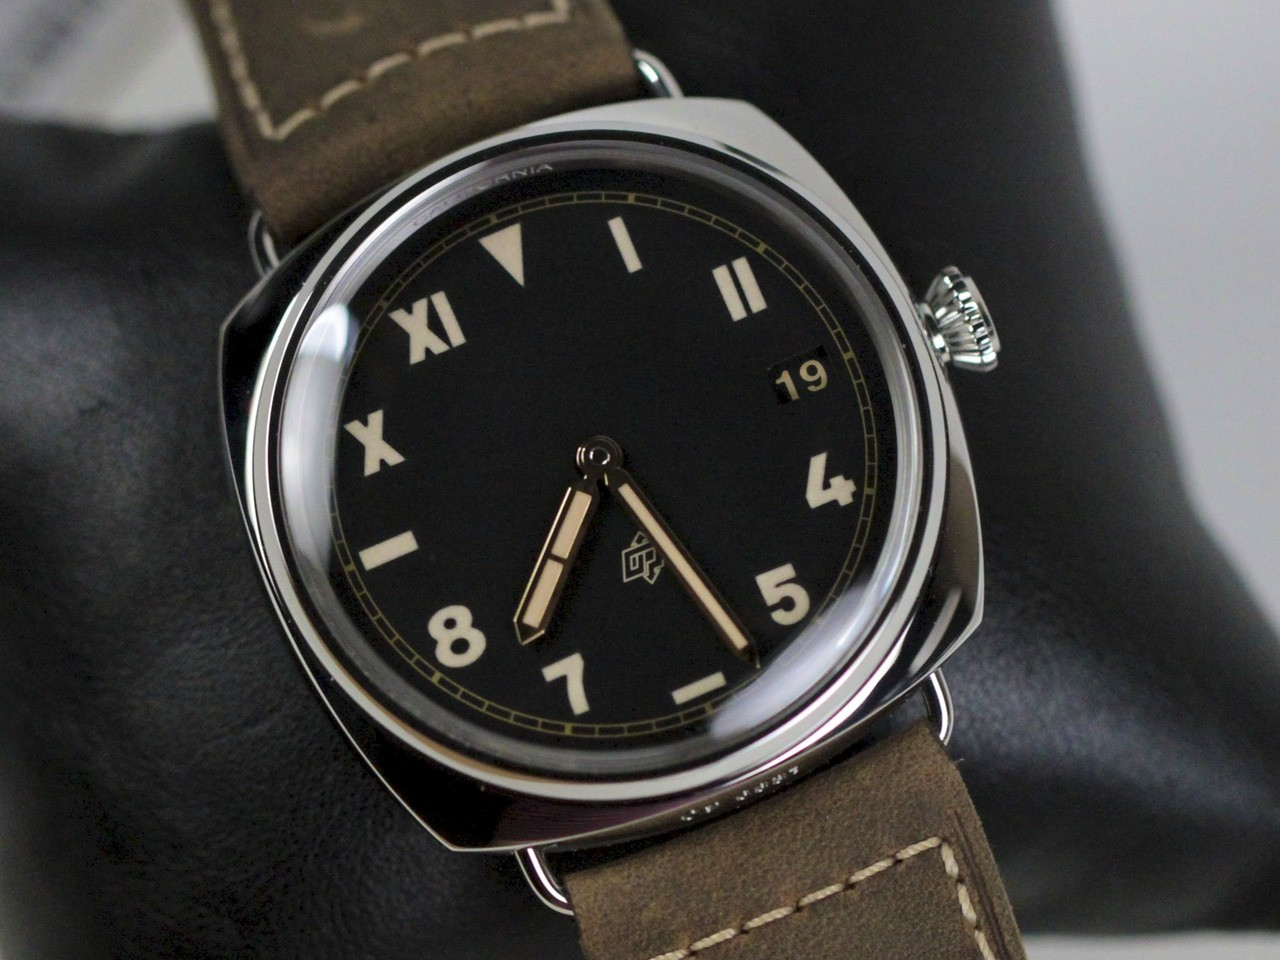 Dial & Bezel - New Panerai Watch - Radiomir California 3 Days PAM 424 - www.Legendoftime.com - Chicago Watch Center